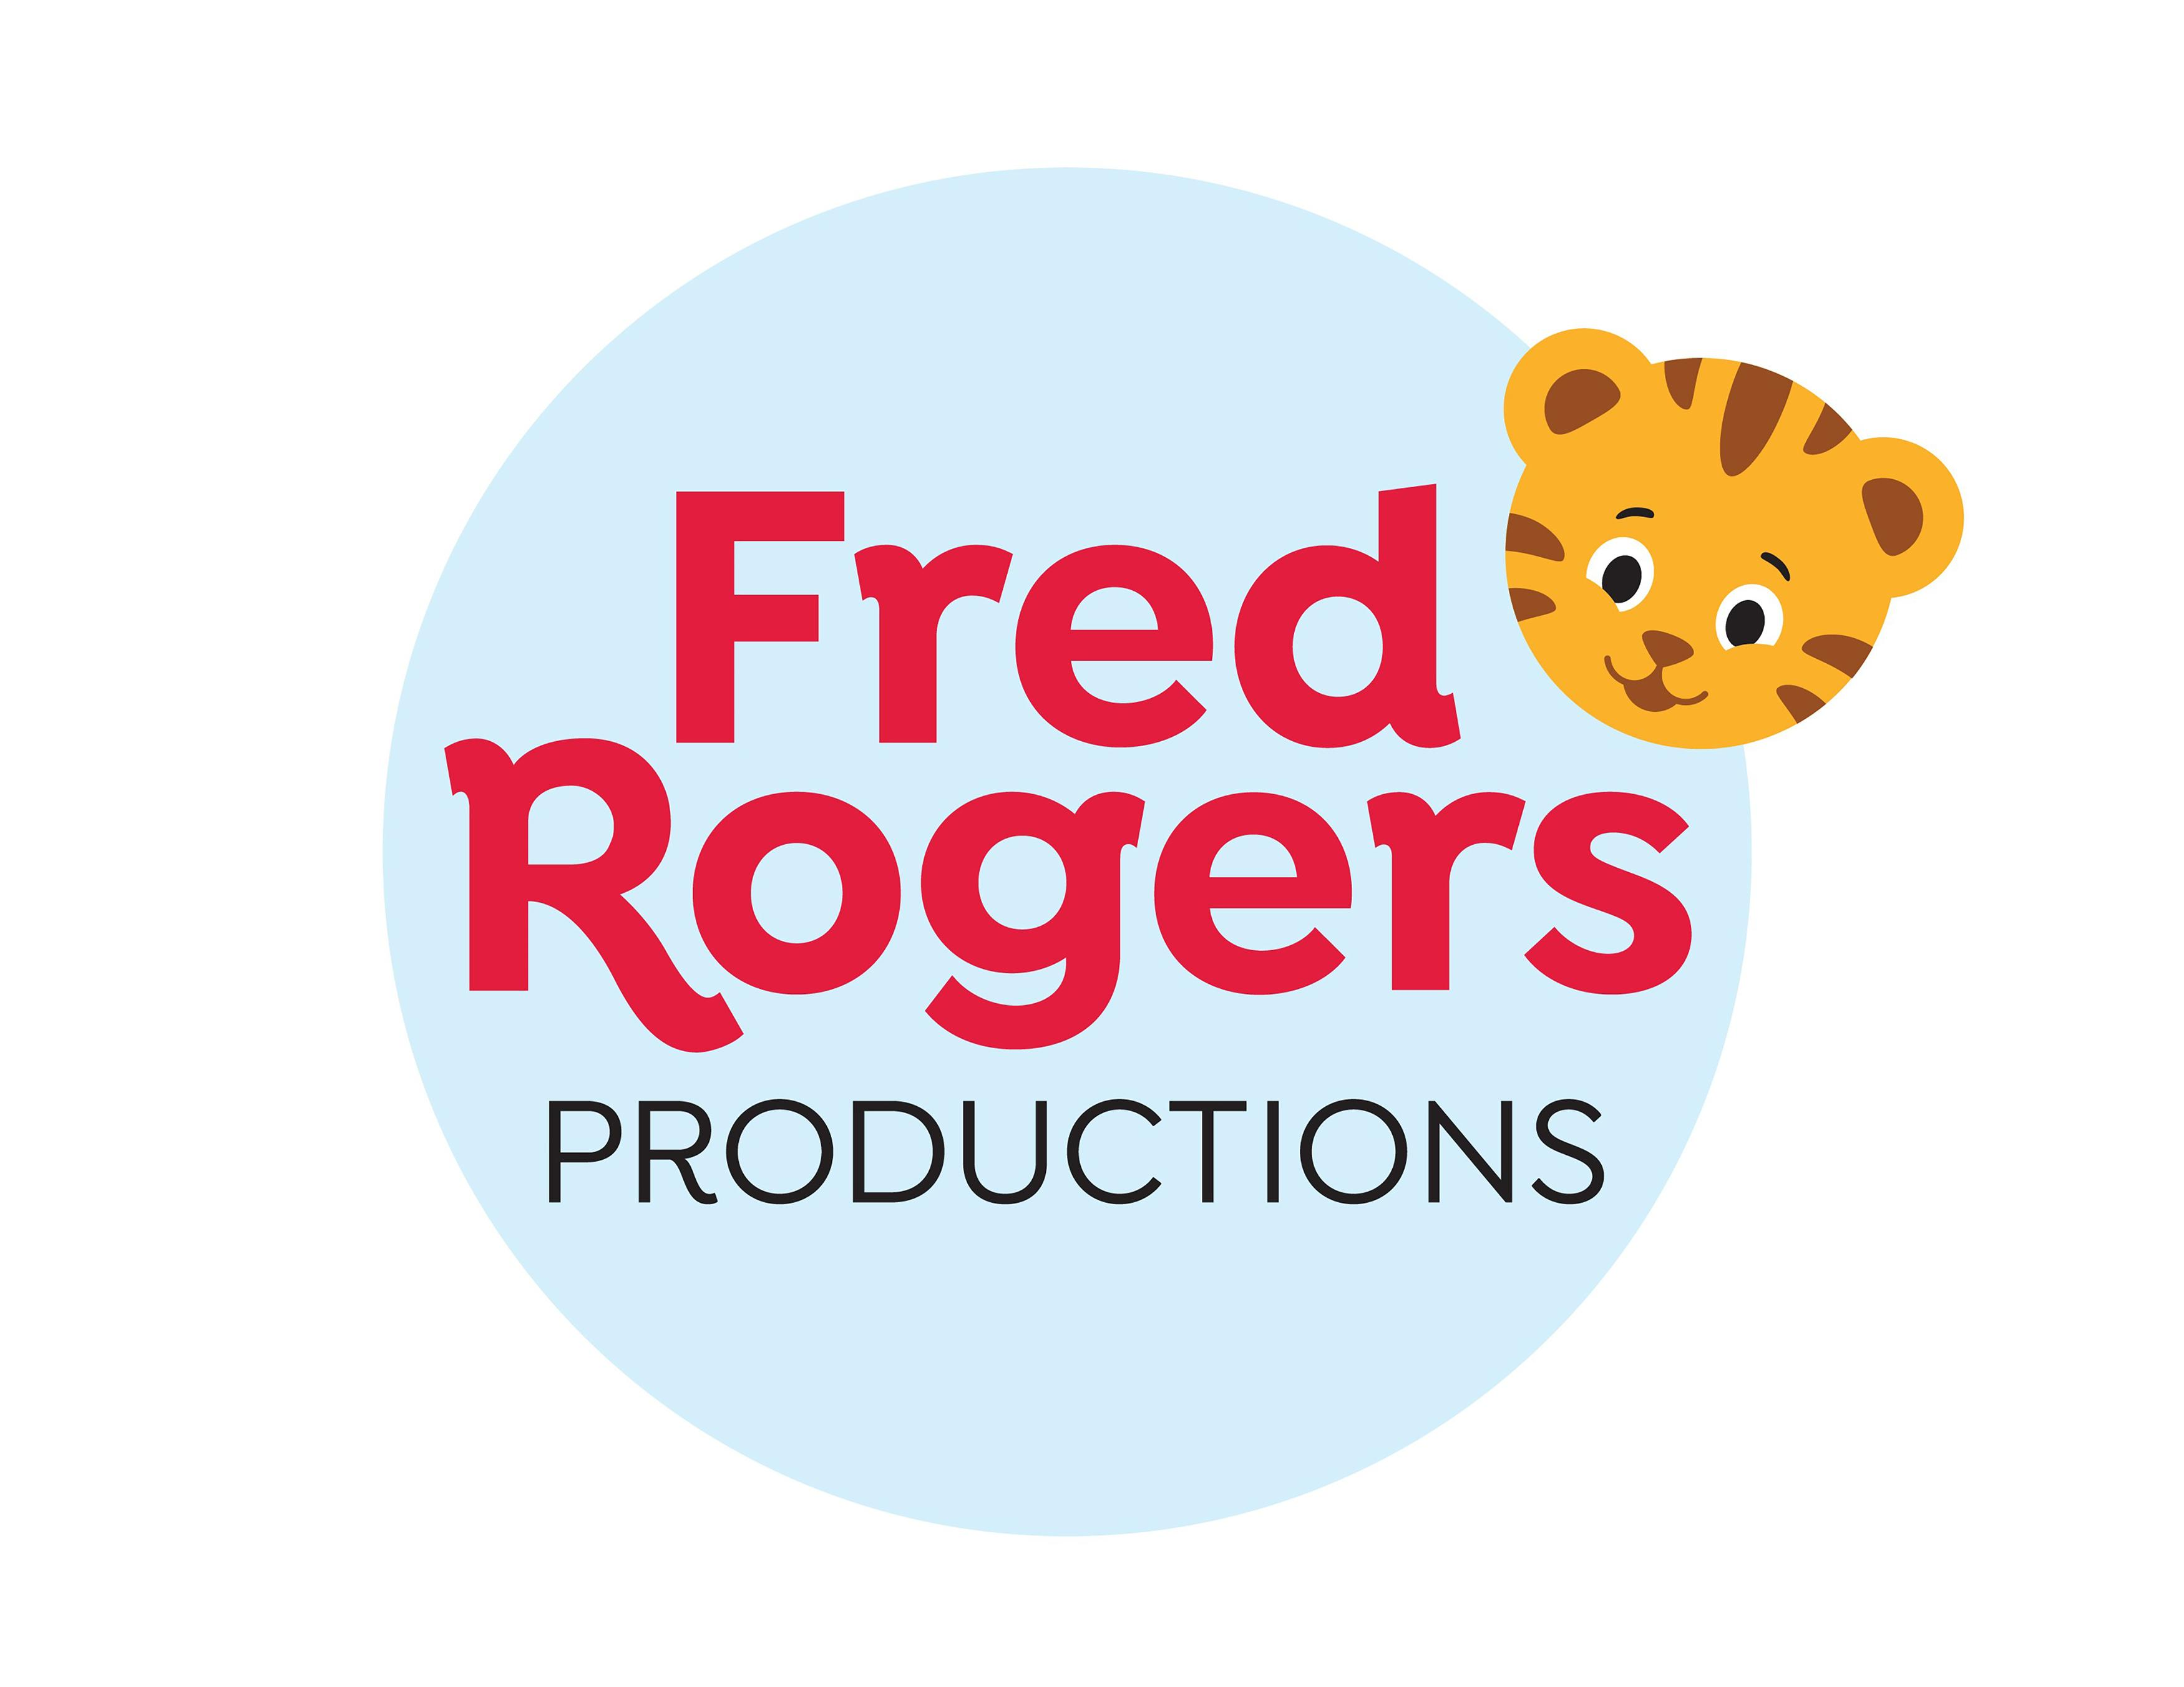 Fred Rogers Company Changes Name To Fred Rogers Productions